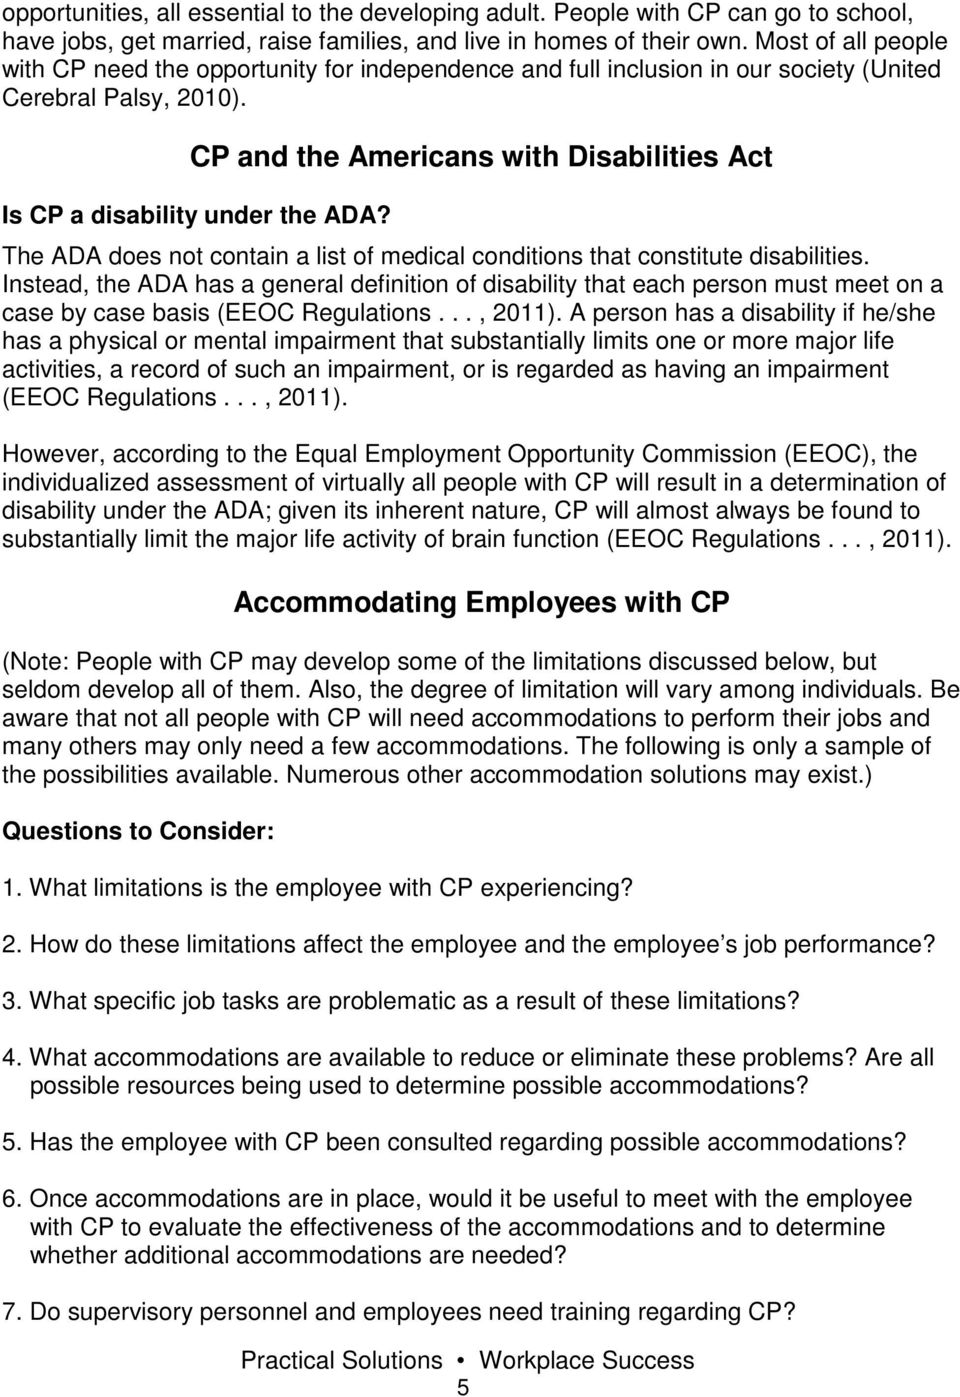 CP and the Americans with Disabilities Act Is CP a disability under the ADA? The ADA does not contain a list of medical conditions that constitute disabilities.